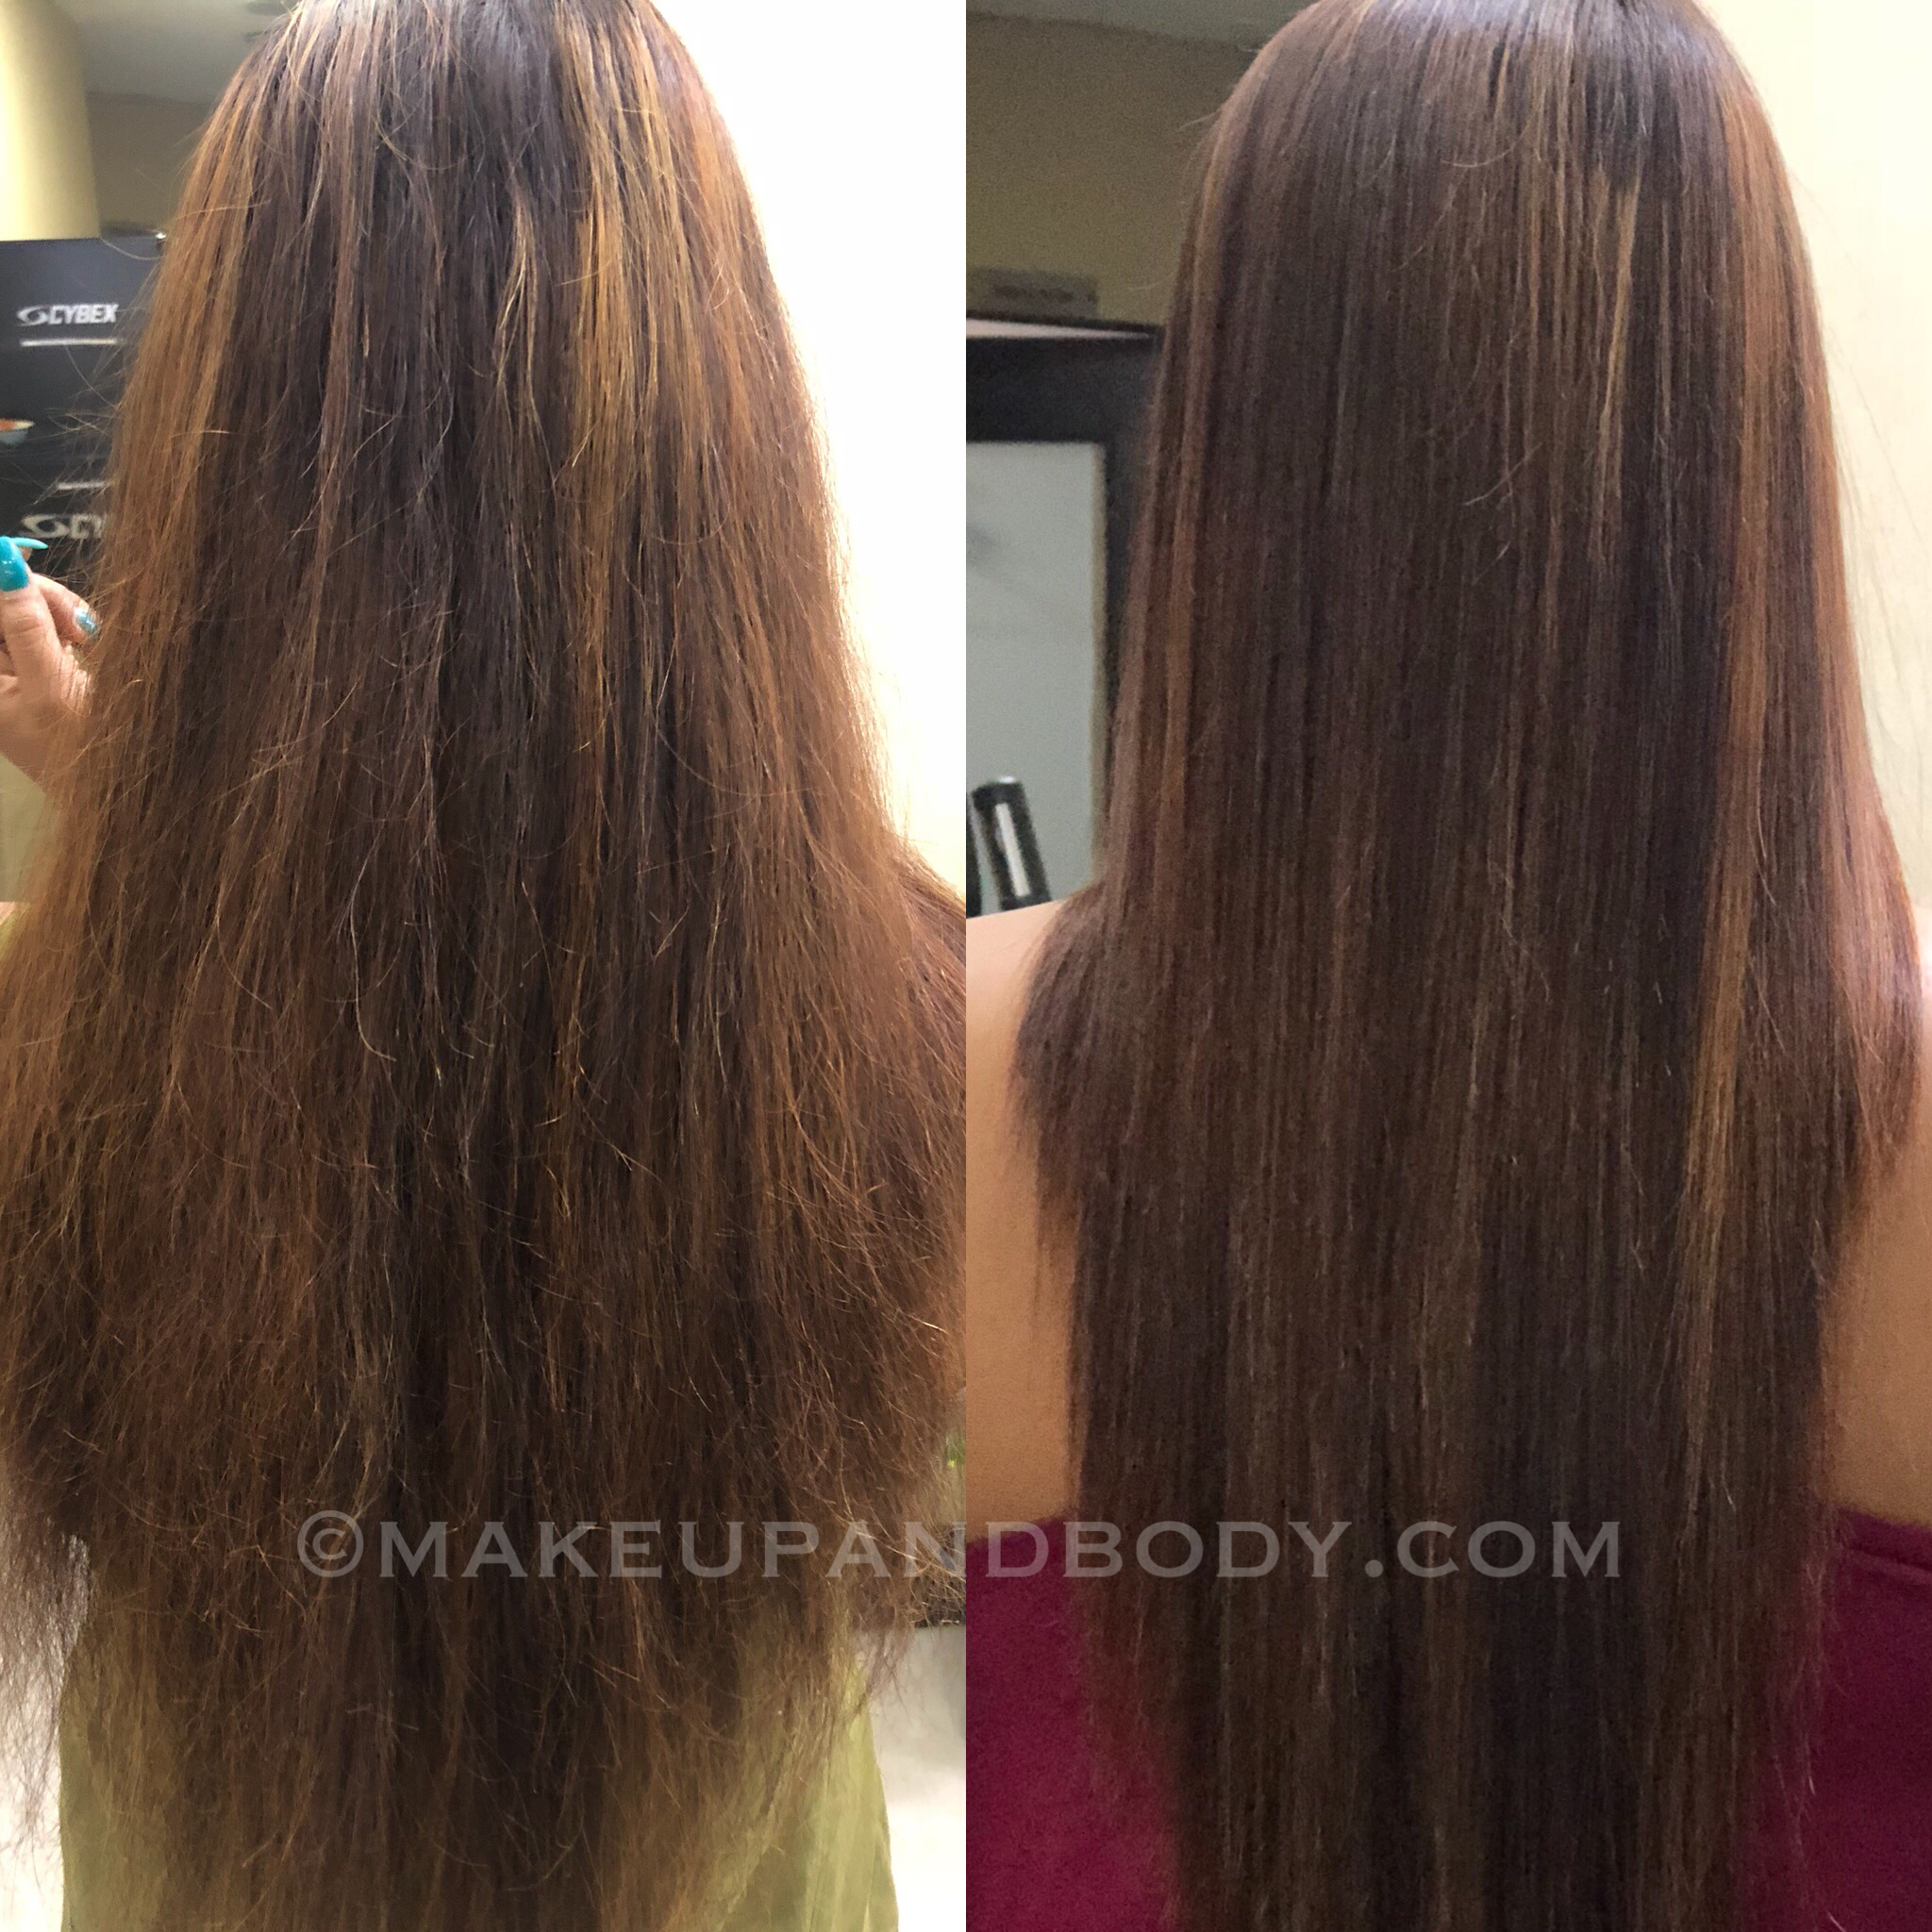 My Experience with Kerafusion Keratin treatment at VLCC Dwarka Sector-11